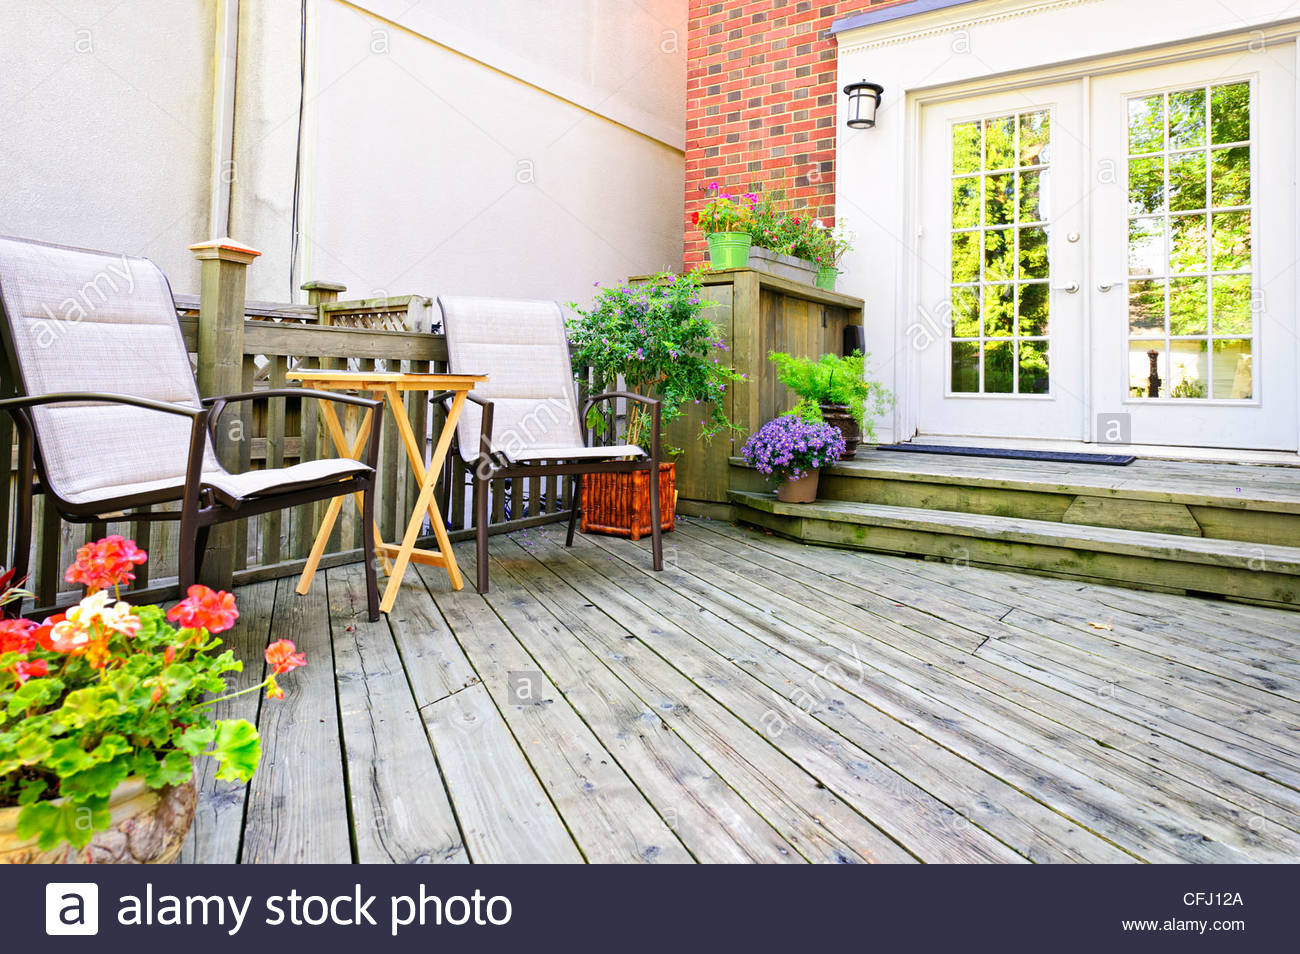 Wooden Deck On House With Chairs And French Doors Stock in size 1300 X 954